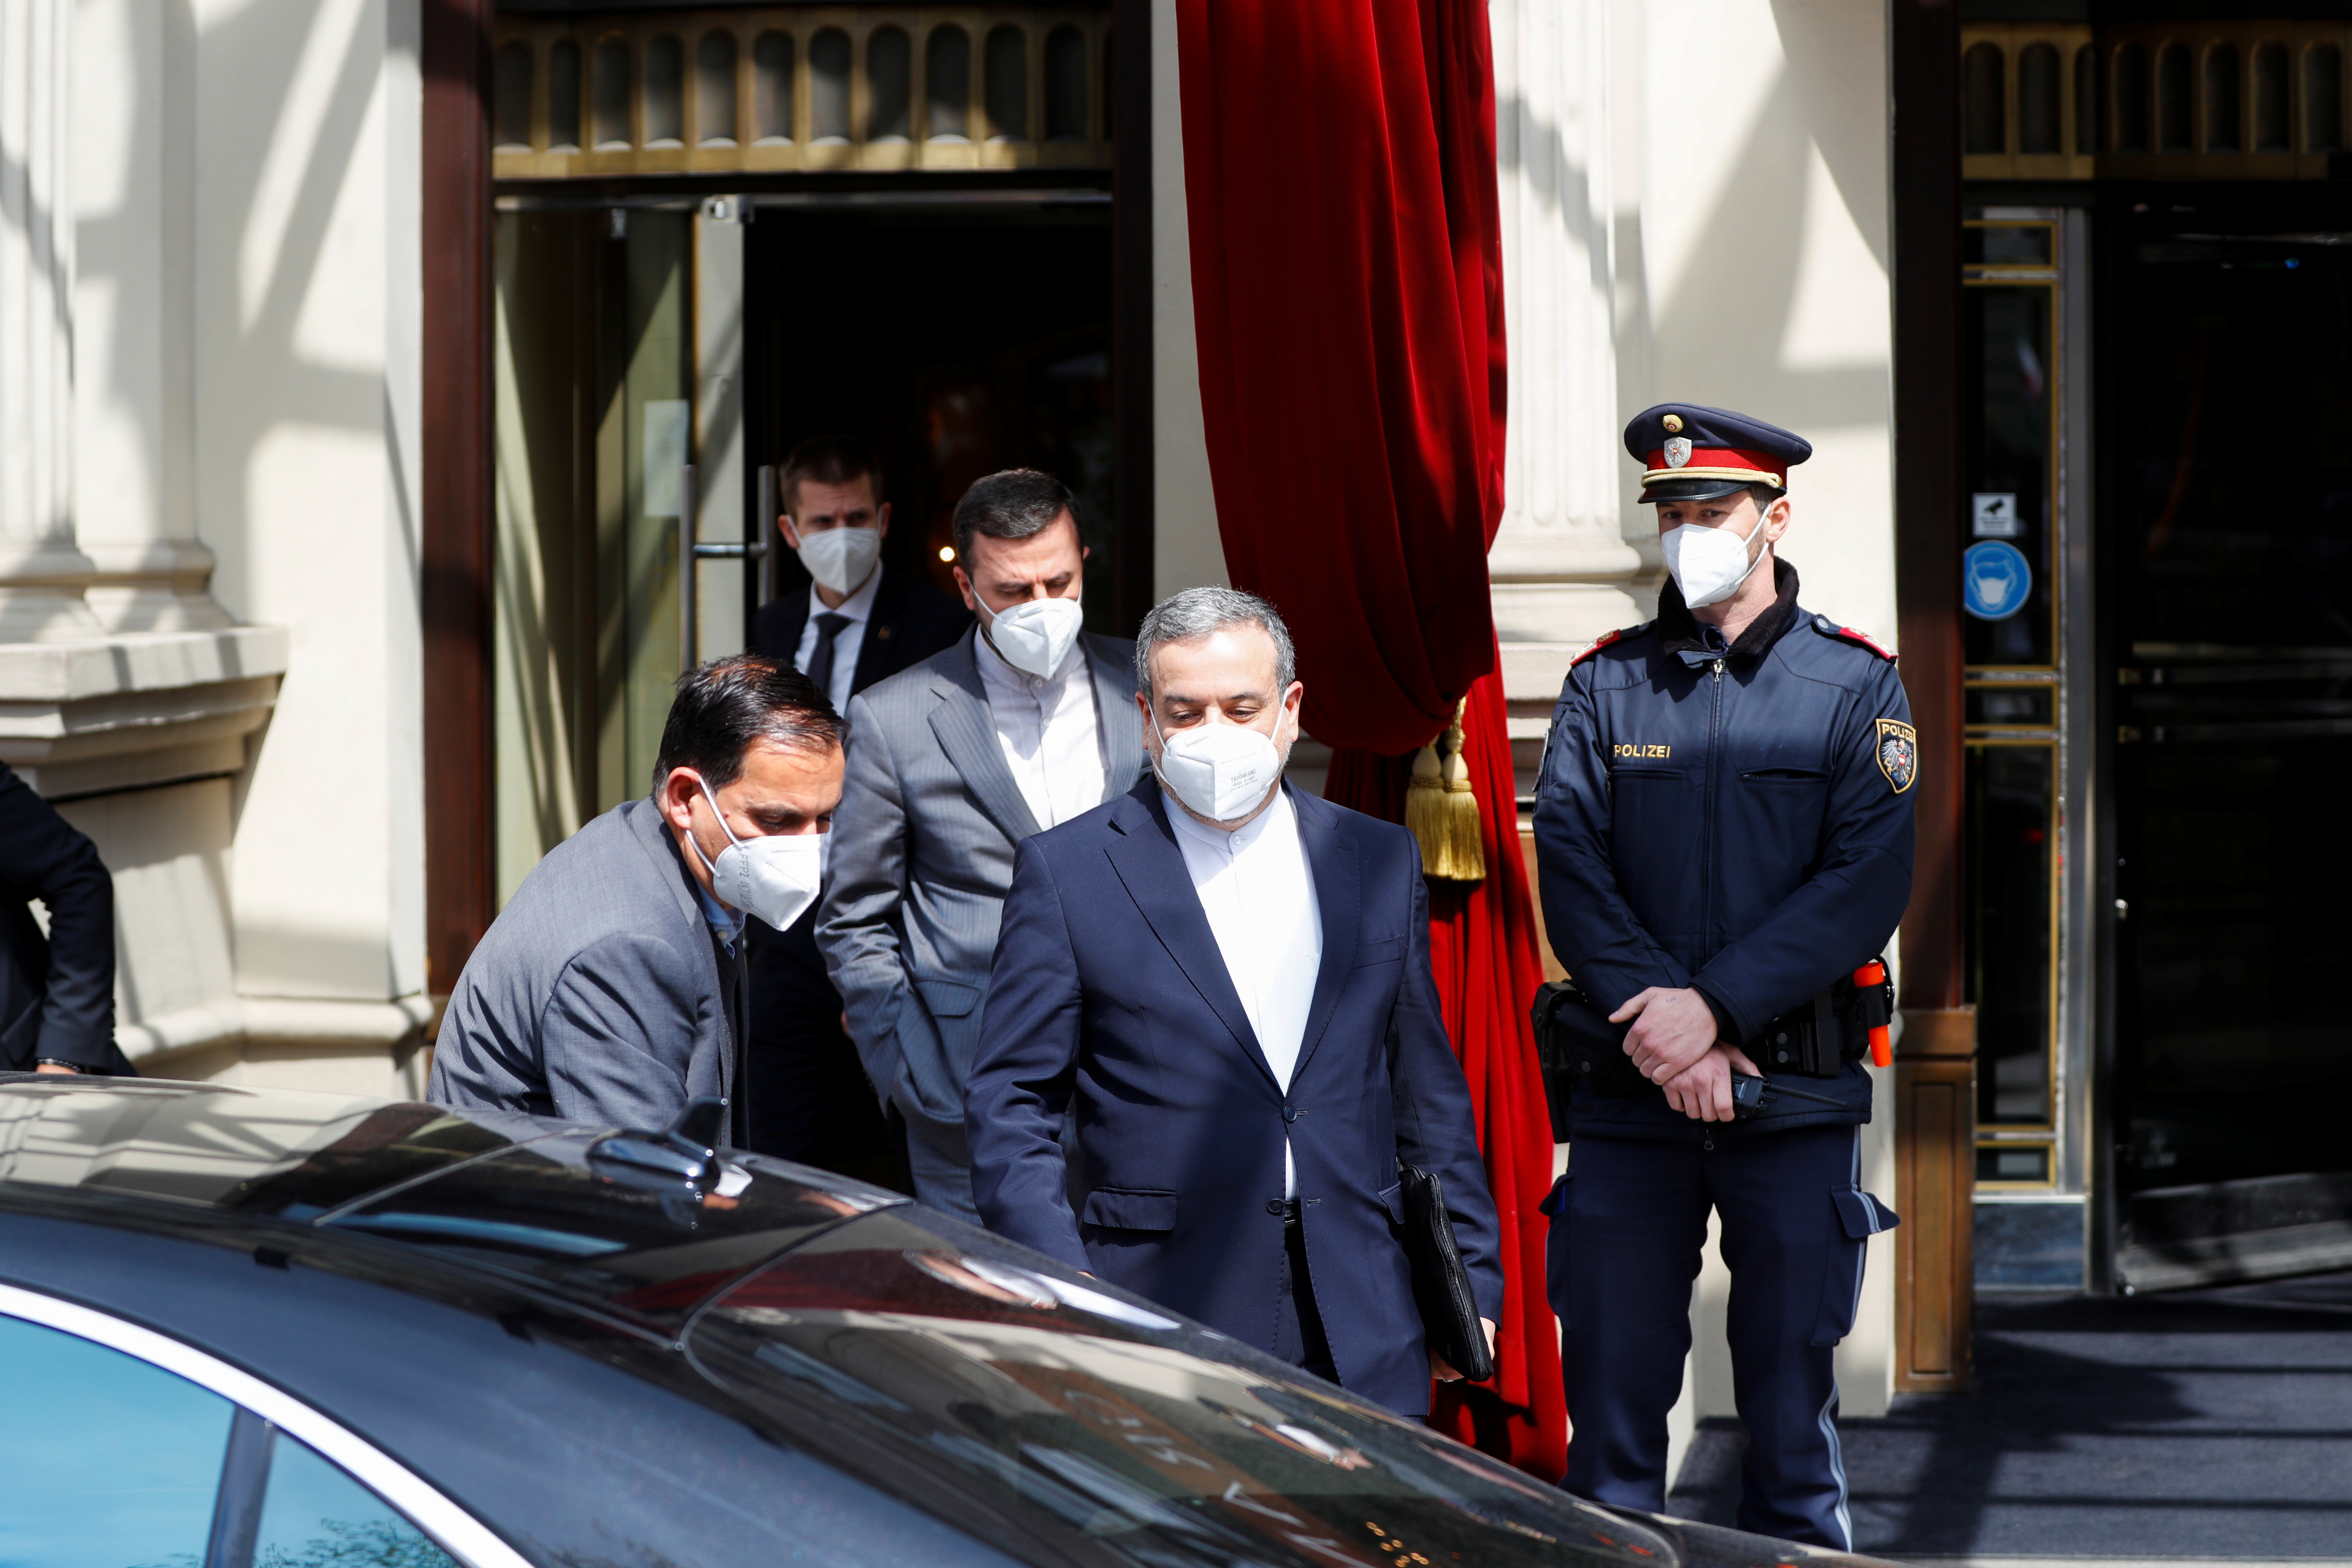 Iranian Deputy at the Ministry of Foreign Affairs Abbas Araghchi and Iran's ambassador to the U.N. nuclear watchdog Kazem Gharibabadi walk before a meeting of the Joint Commission of the Joint Comprehensive Plan of Action (JCPOA), in Vienna, Austria, April 20, 2021. REUTERS/Leonhard Foeger